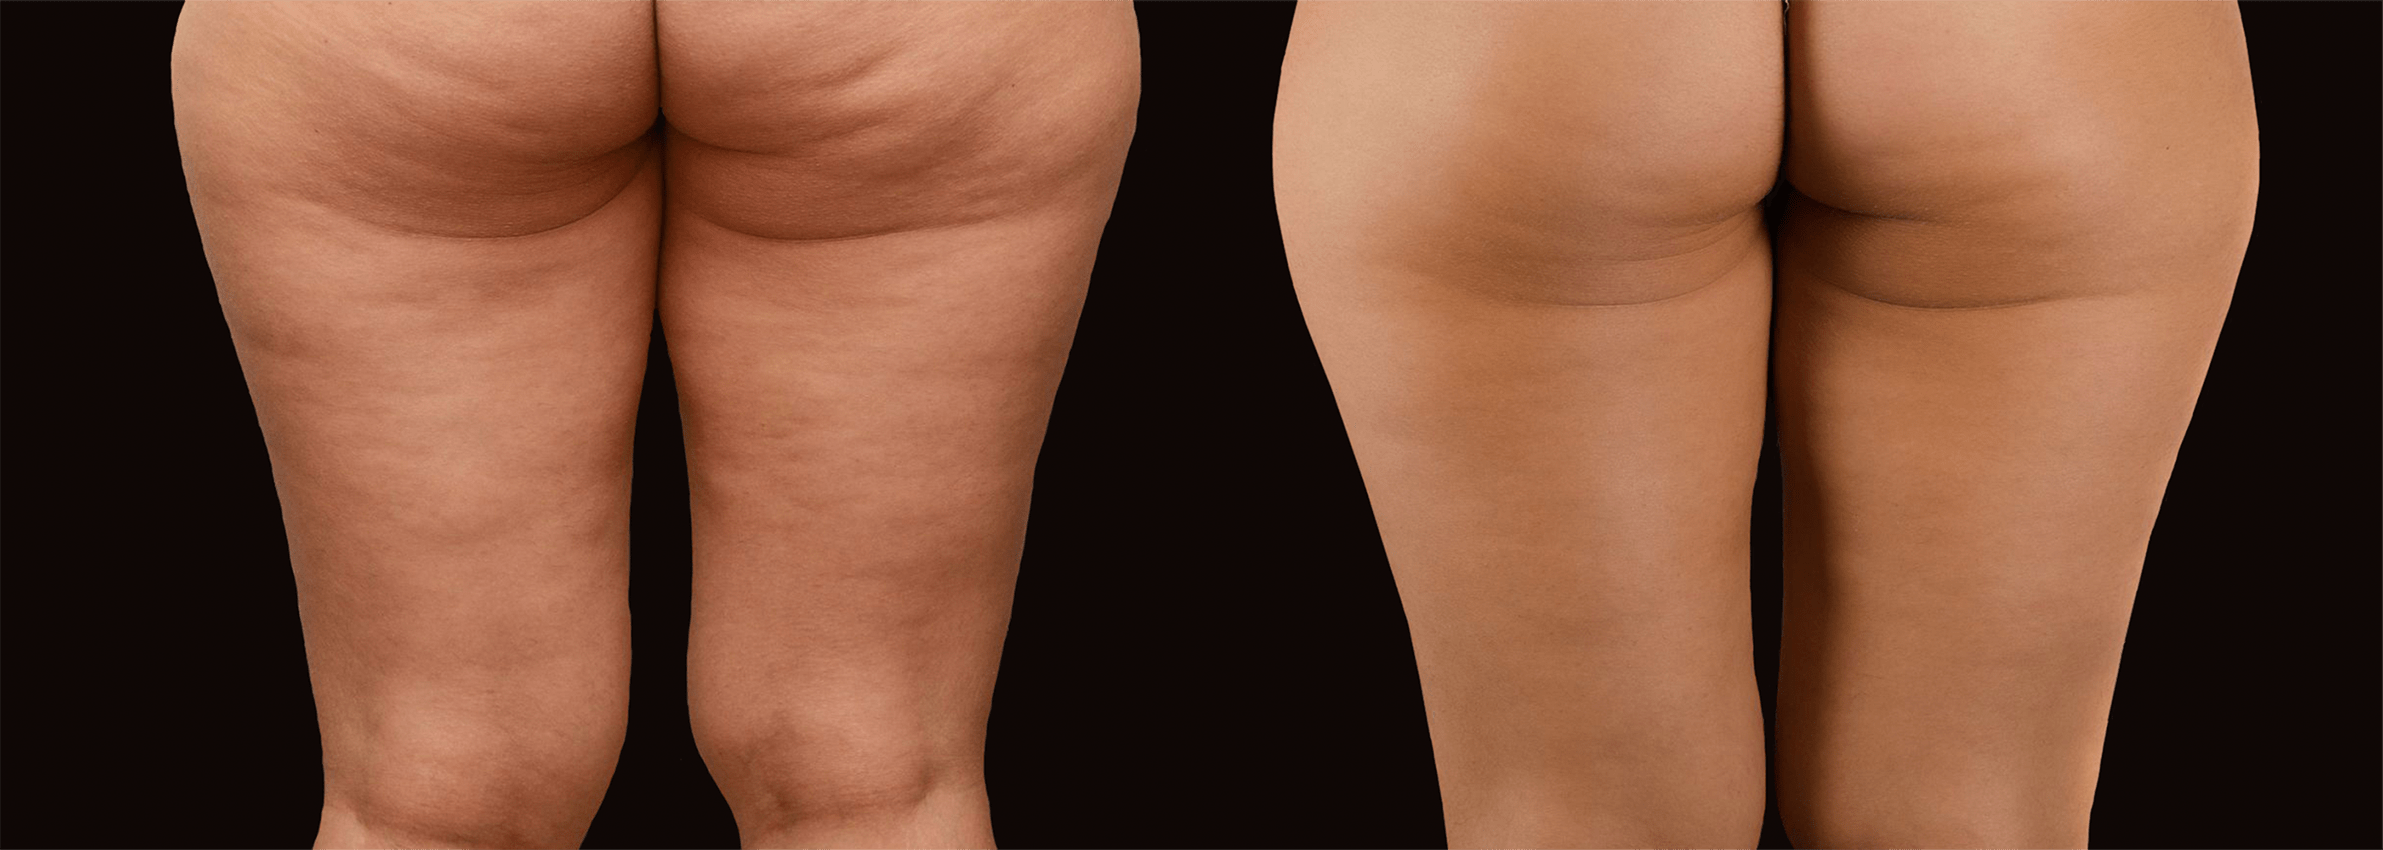 Long Island cellulite removal before after